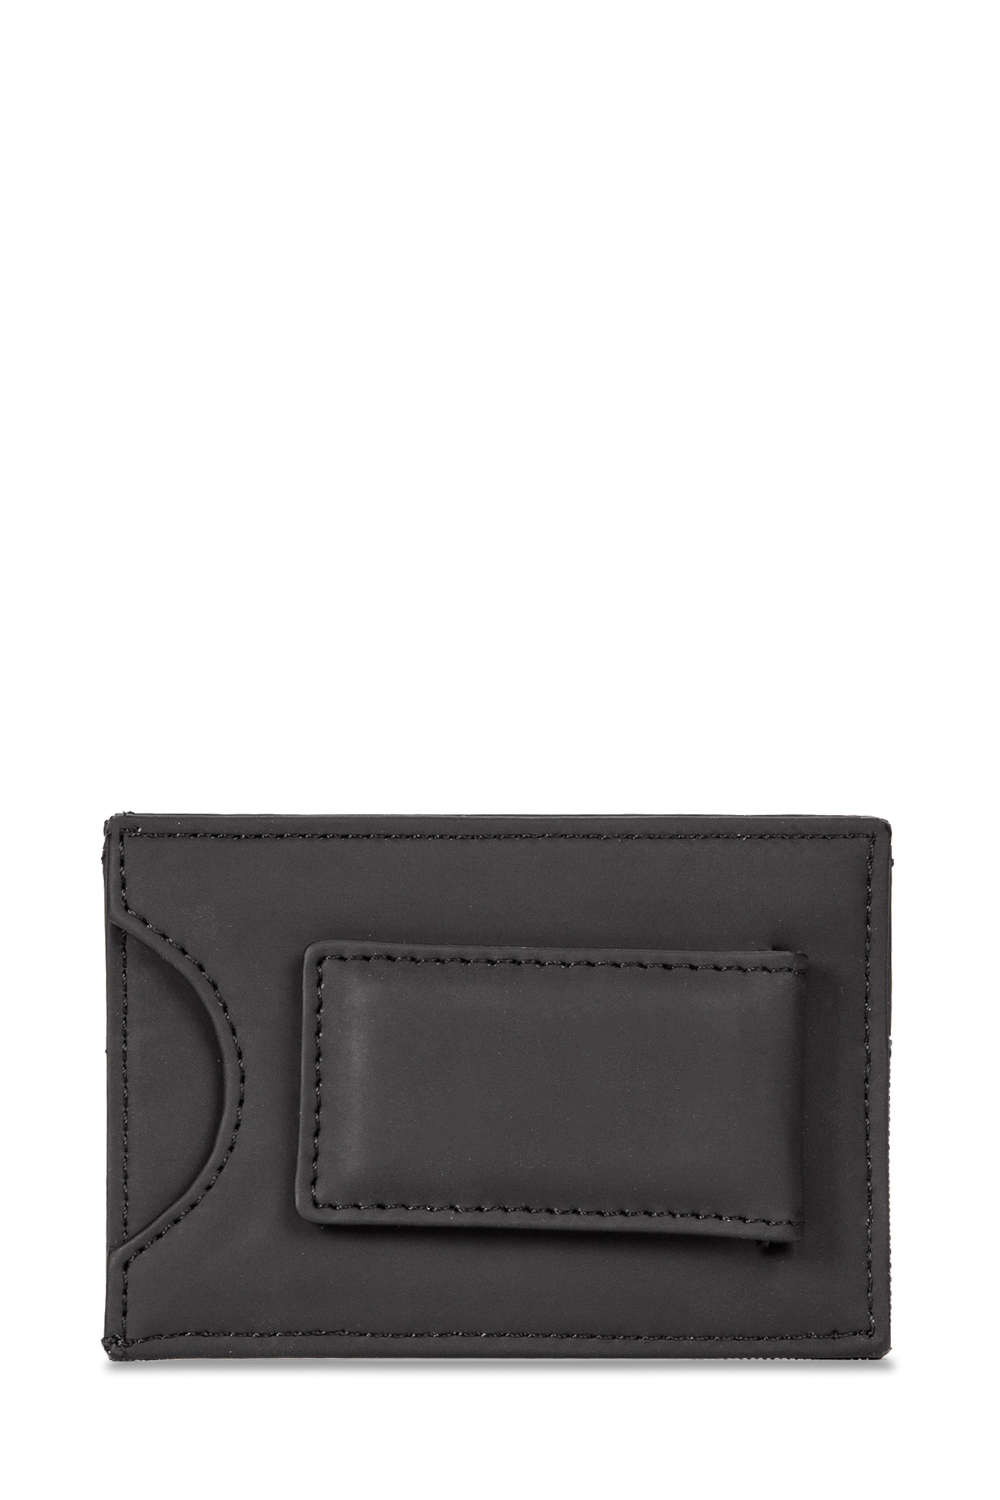 Delmont Bifold Wallet with Removable Card Case Slide Out Fully Lined Black